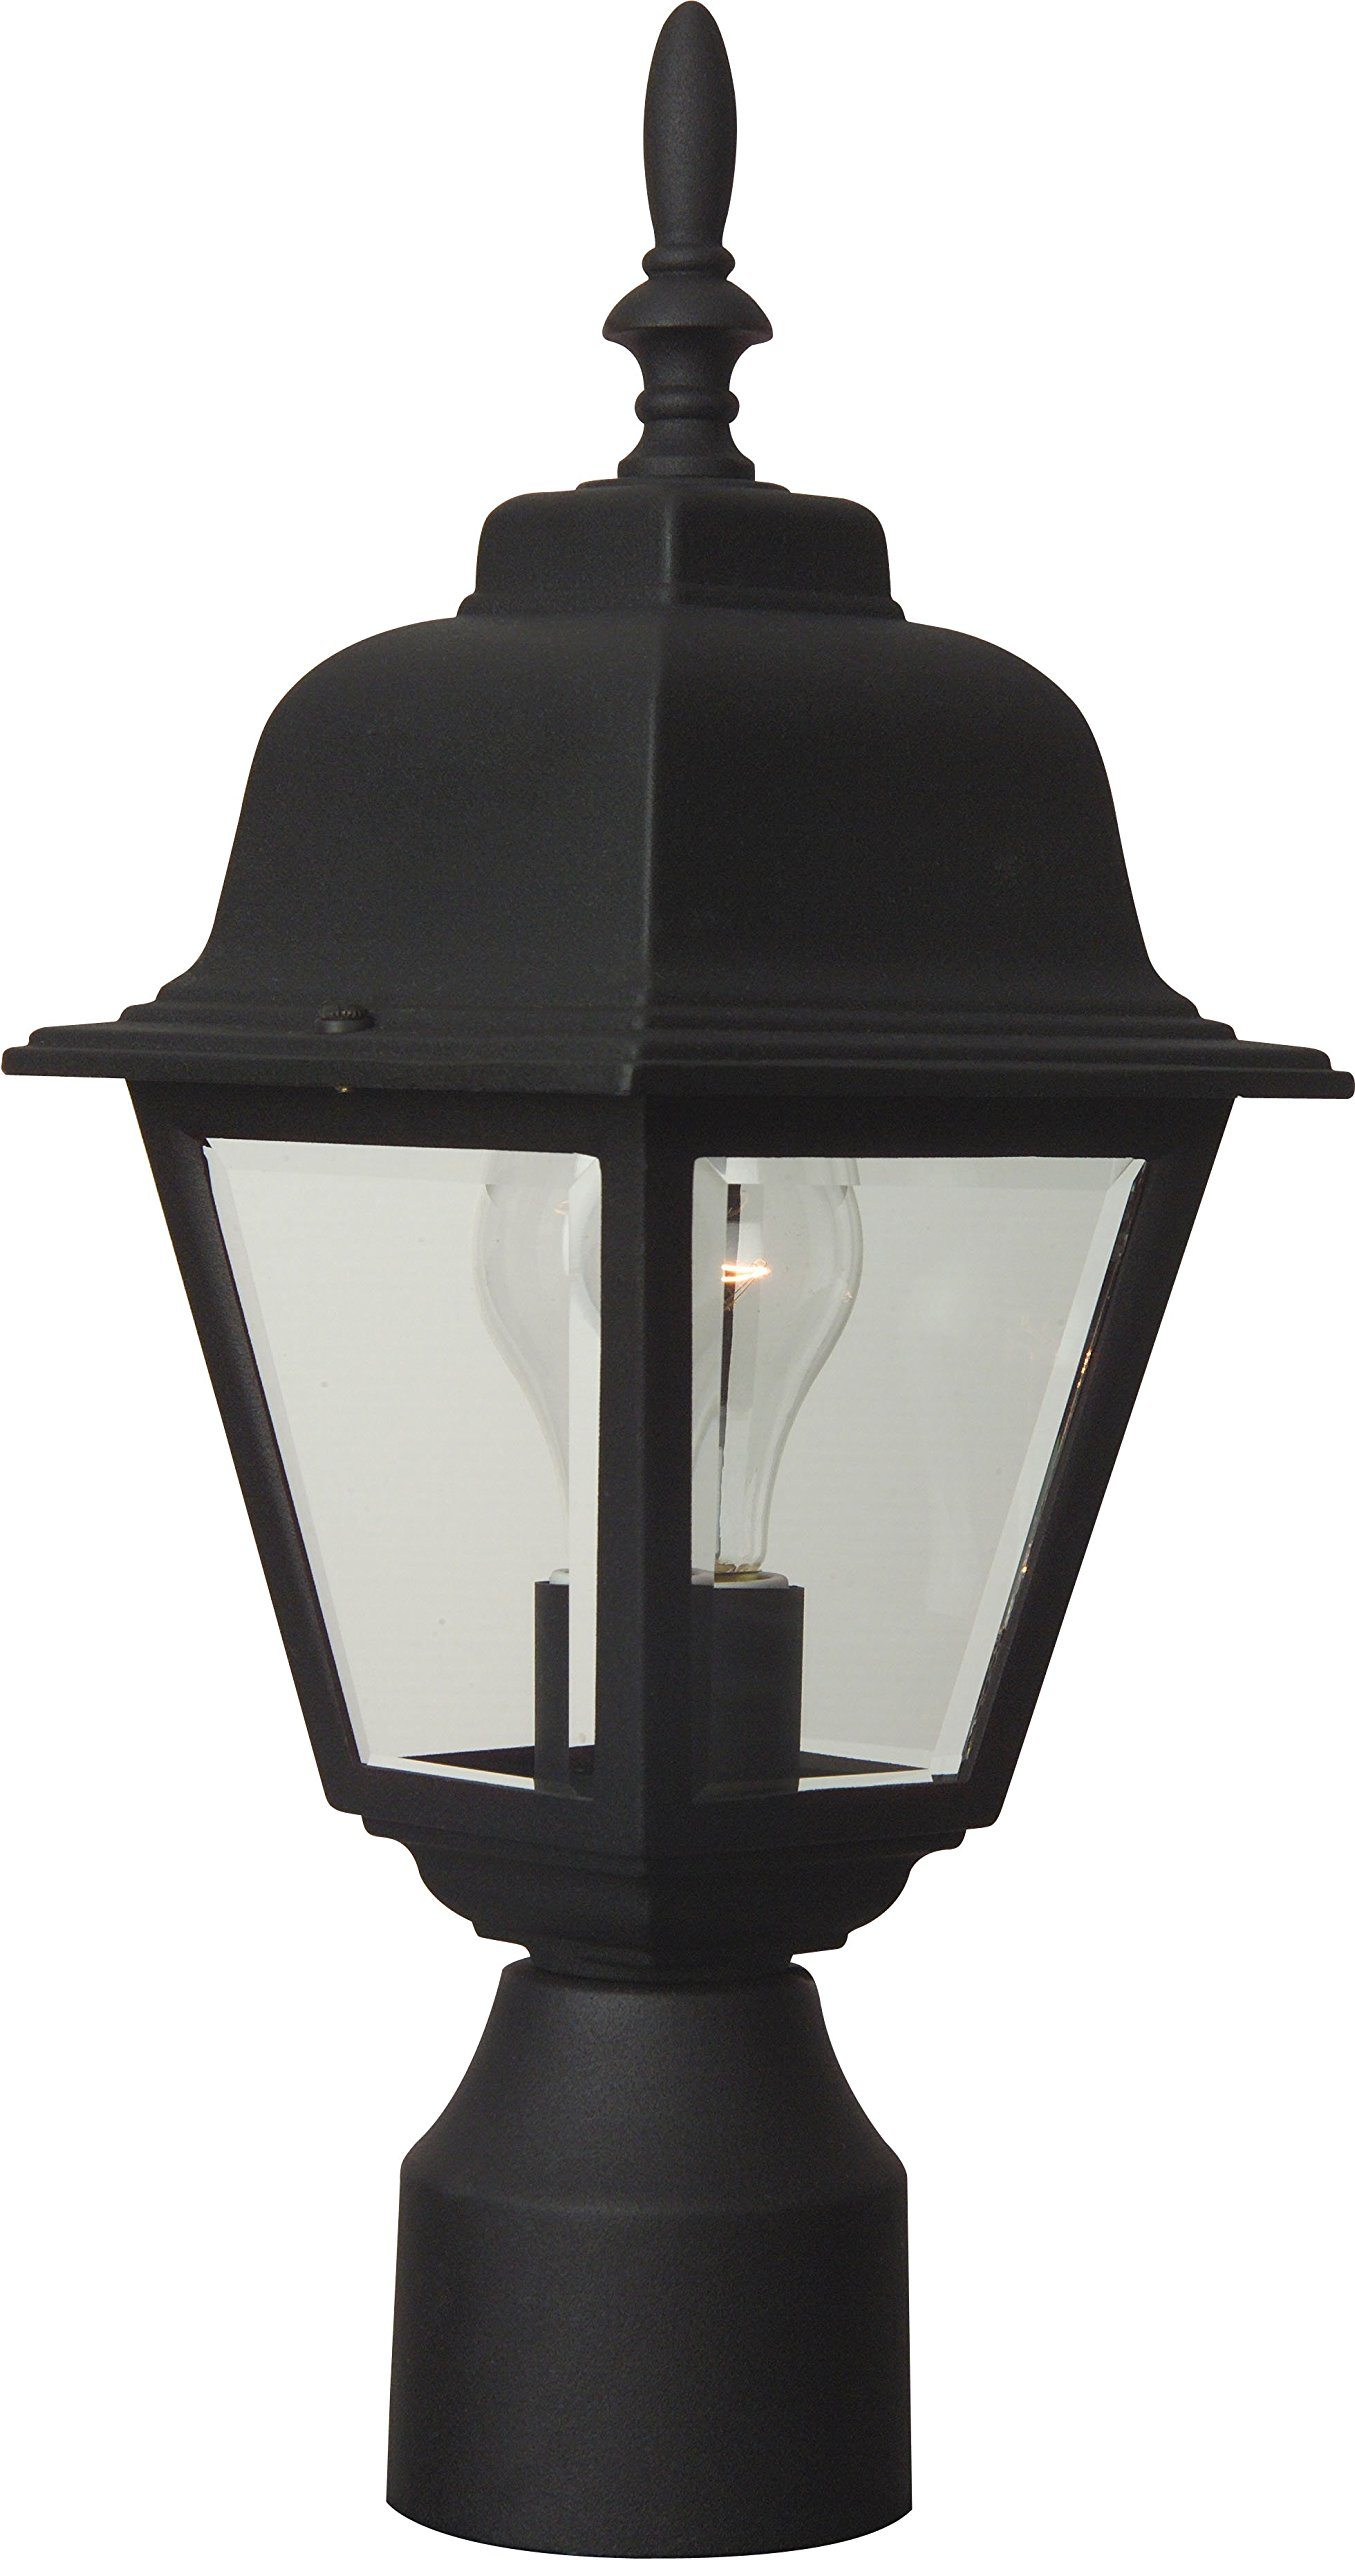 Craftmade Z175-05 Post Mount Light with Beveled Glass Shades, Black Finish